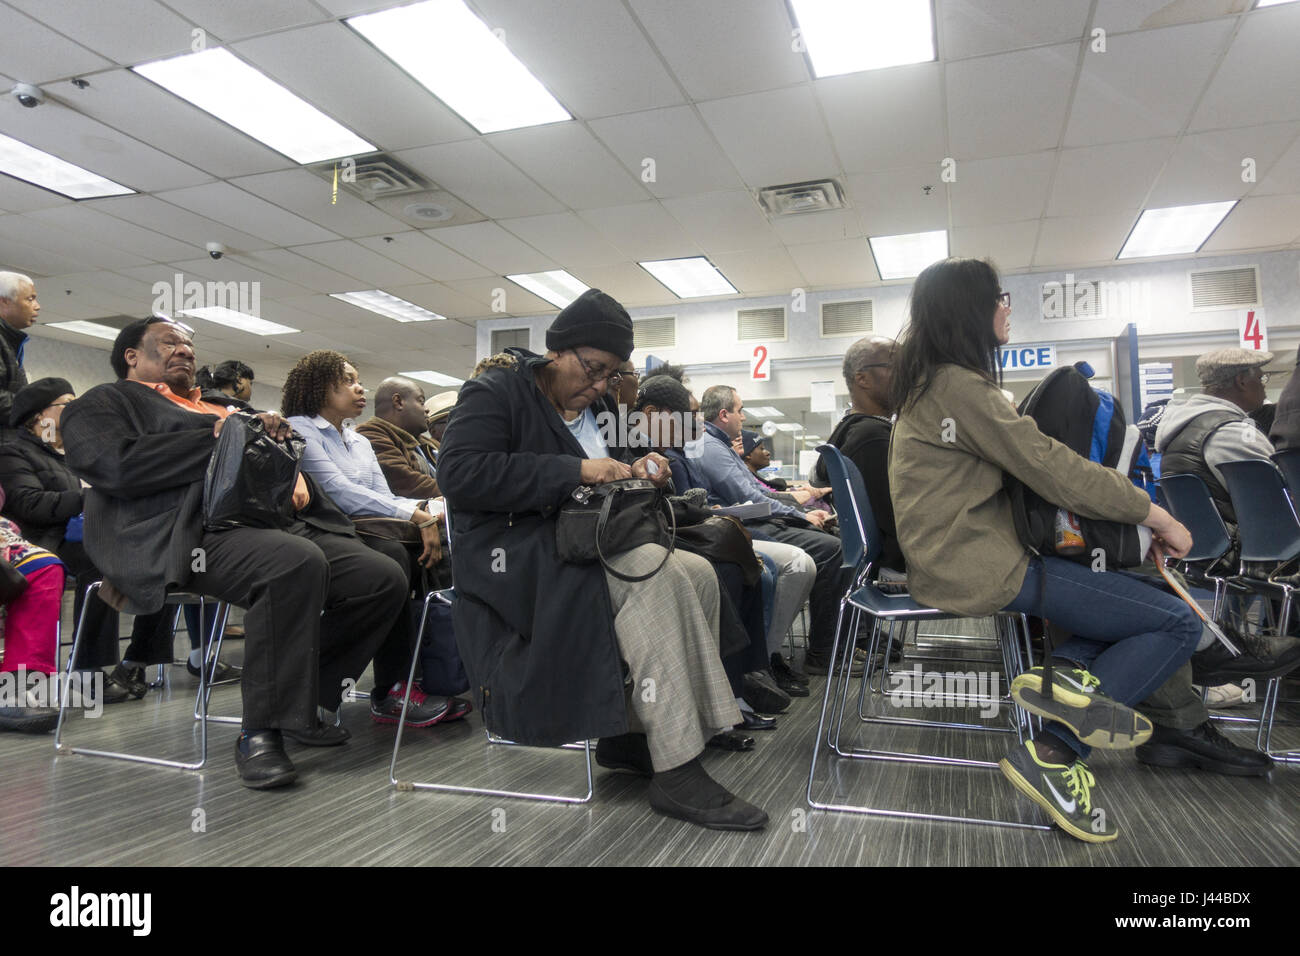 People wait to take care of business at their local social security office in Brooklyn, New York. - Stock Image